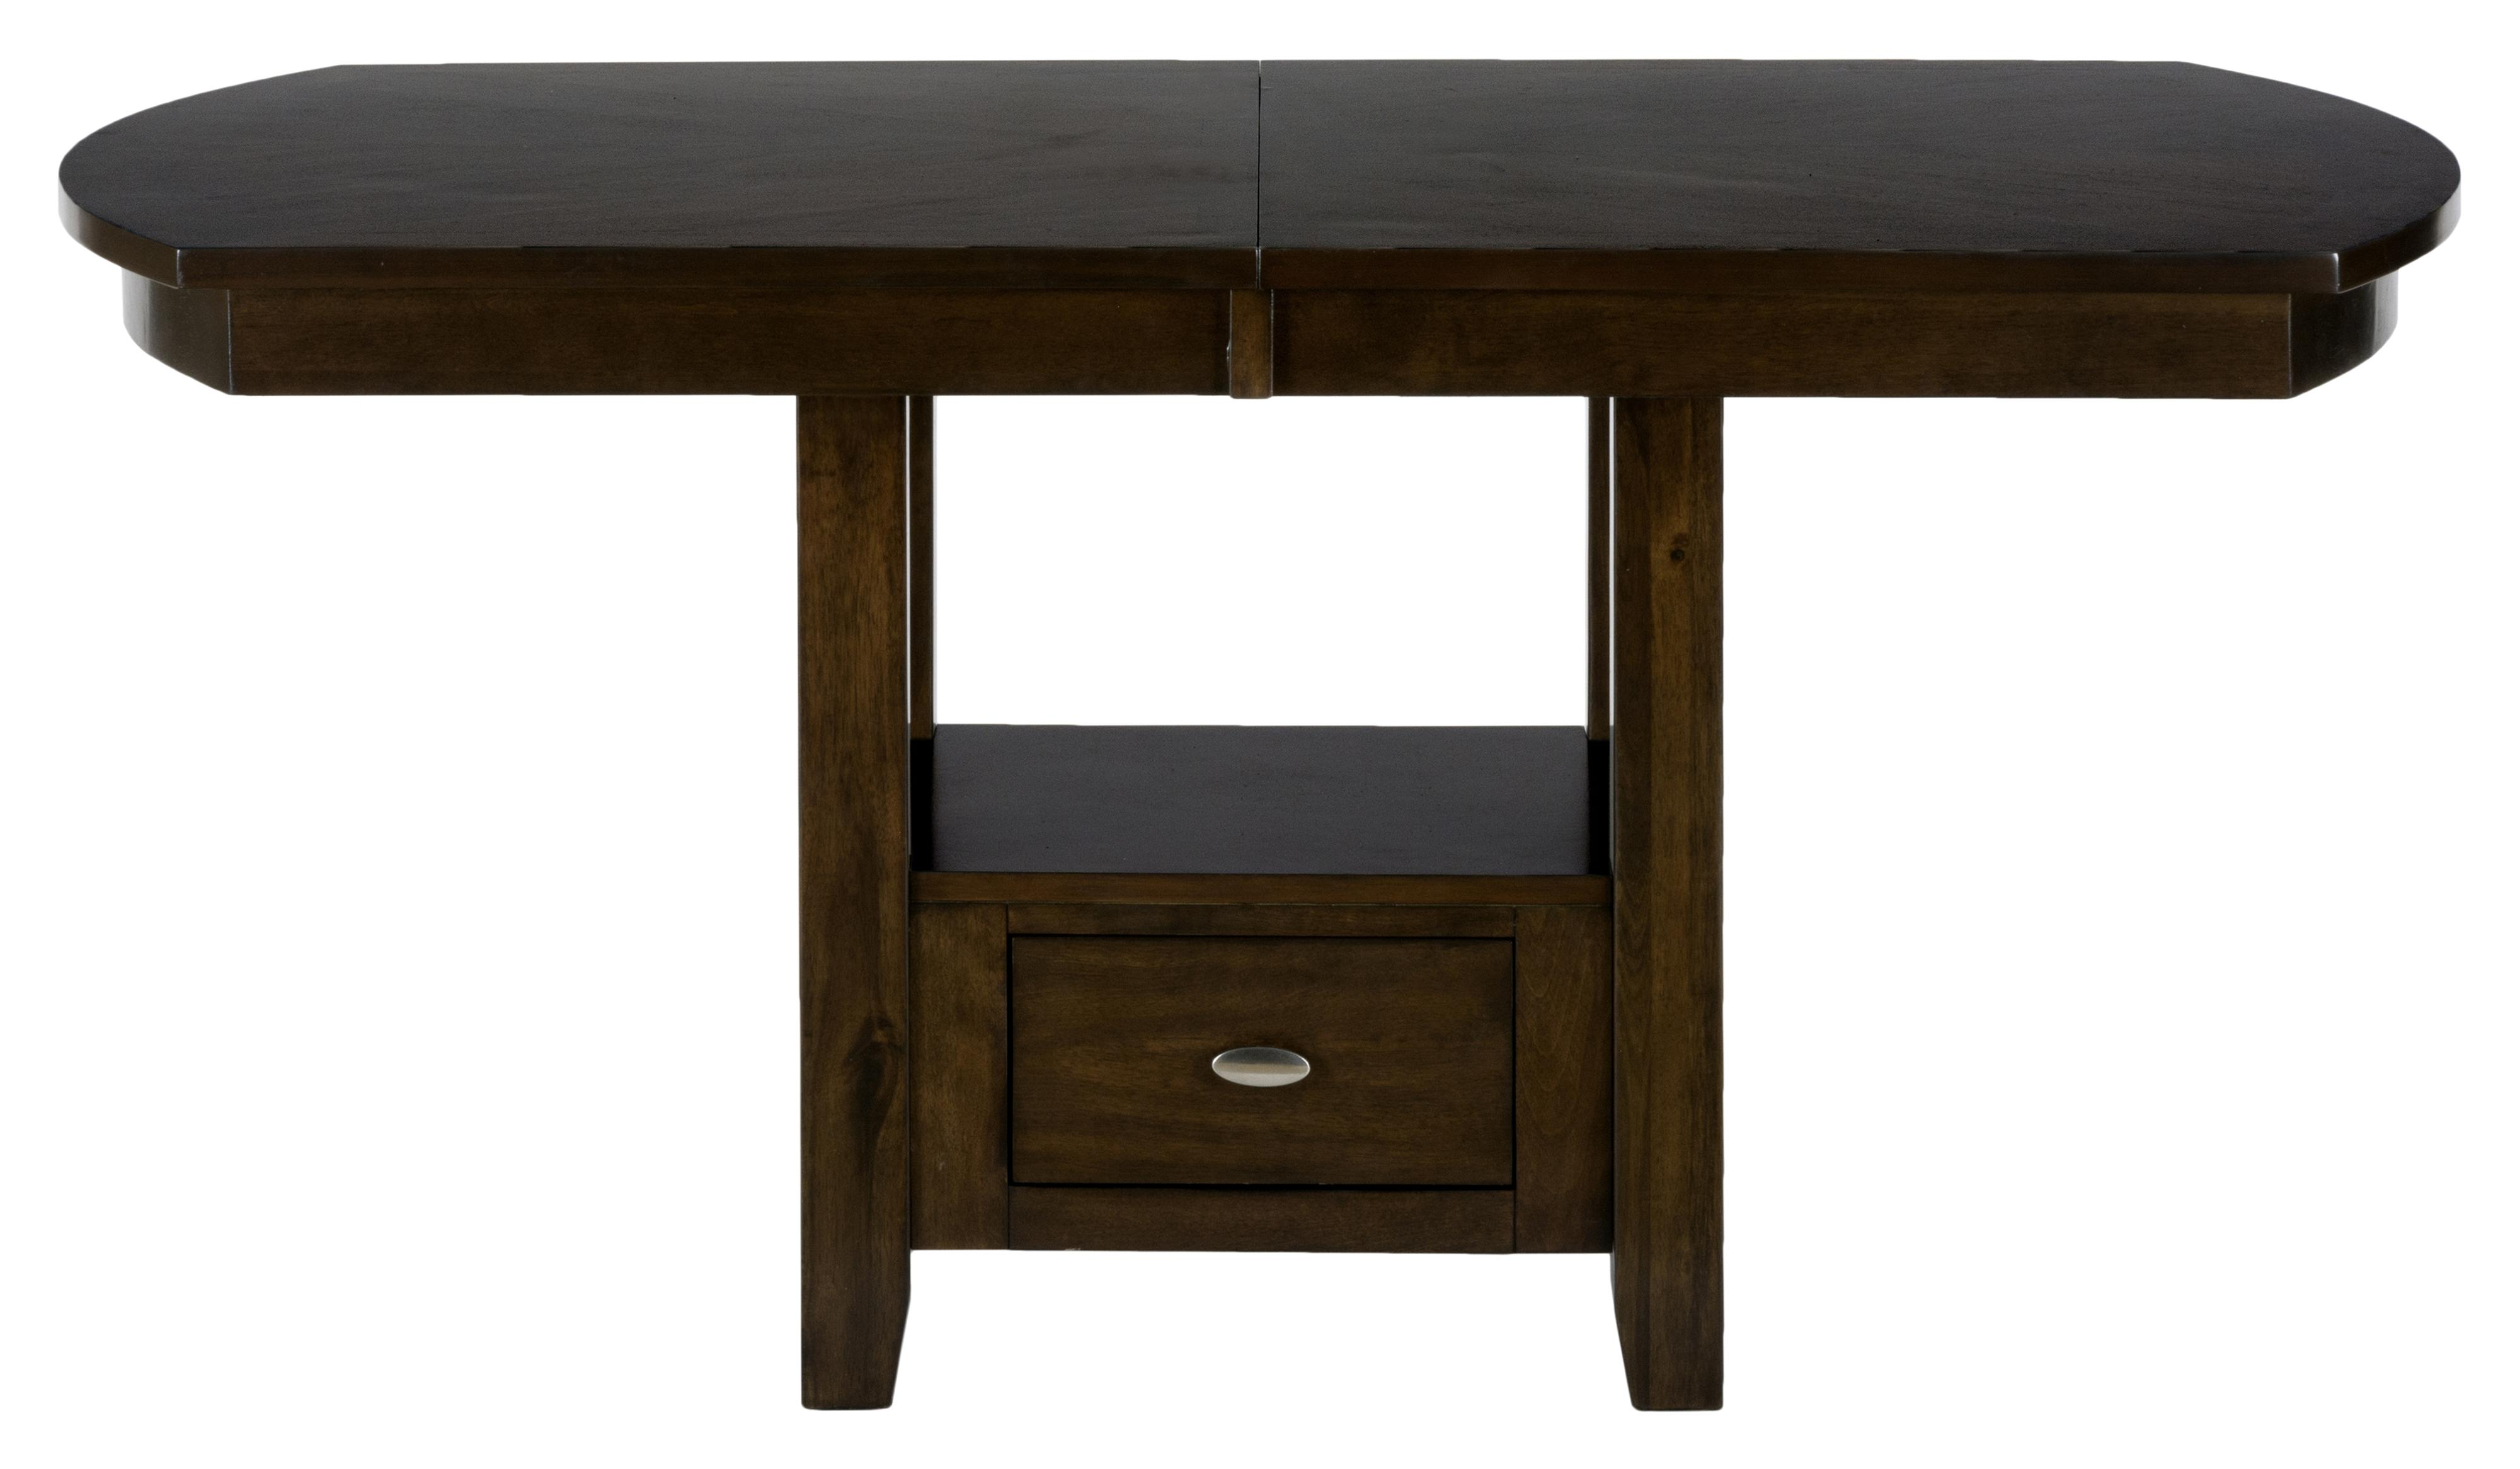 Jofran Mirandela Birch Dining/Counter Height Table  - Item Number: 836-78B+78T